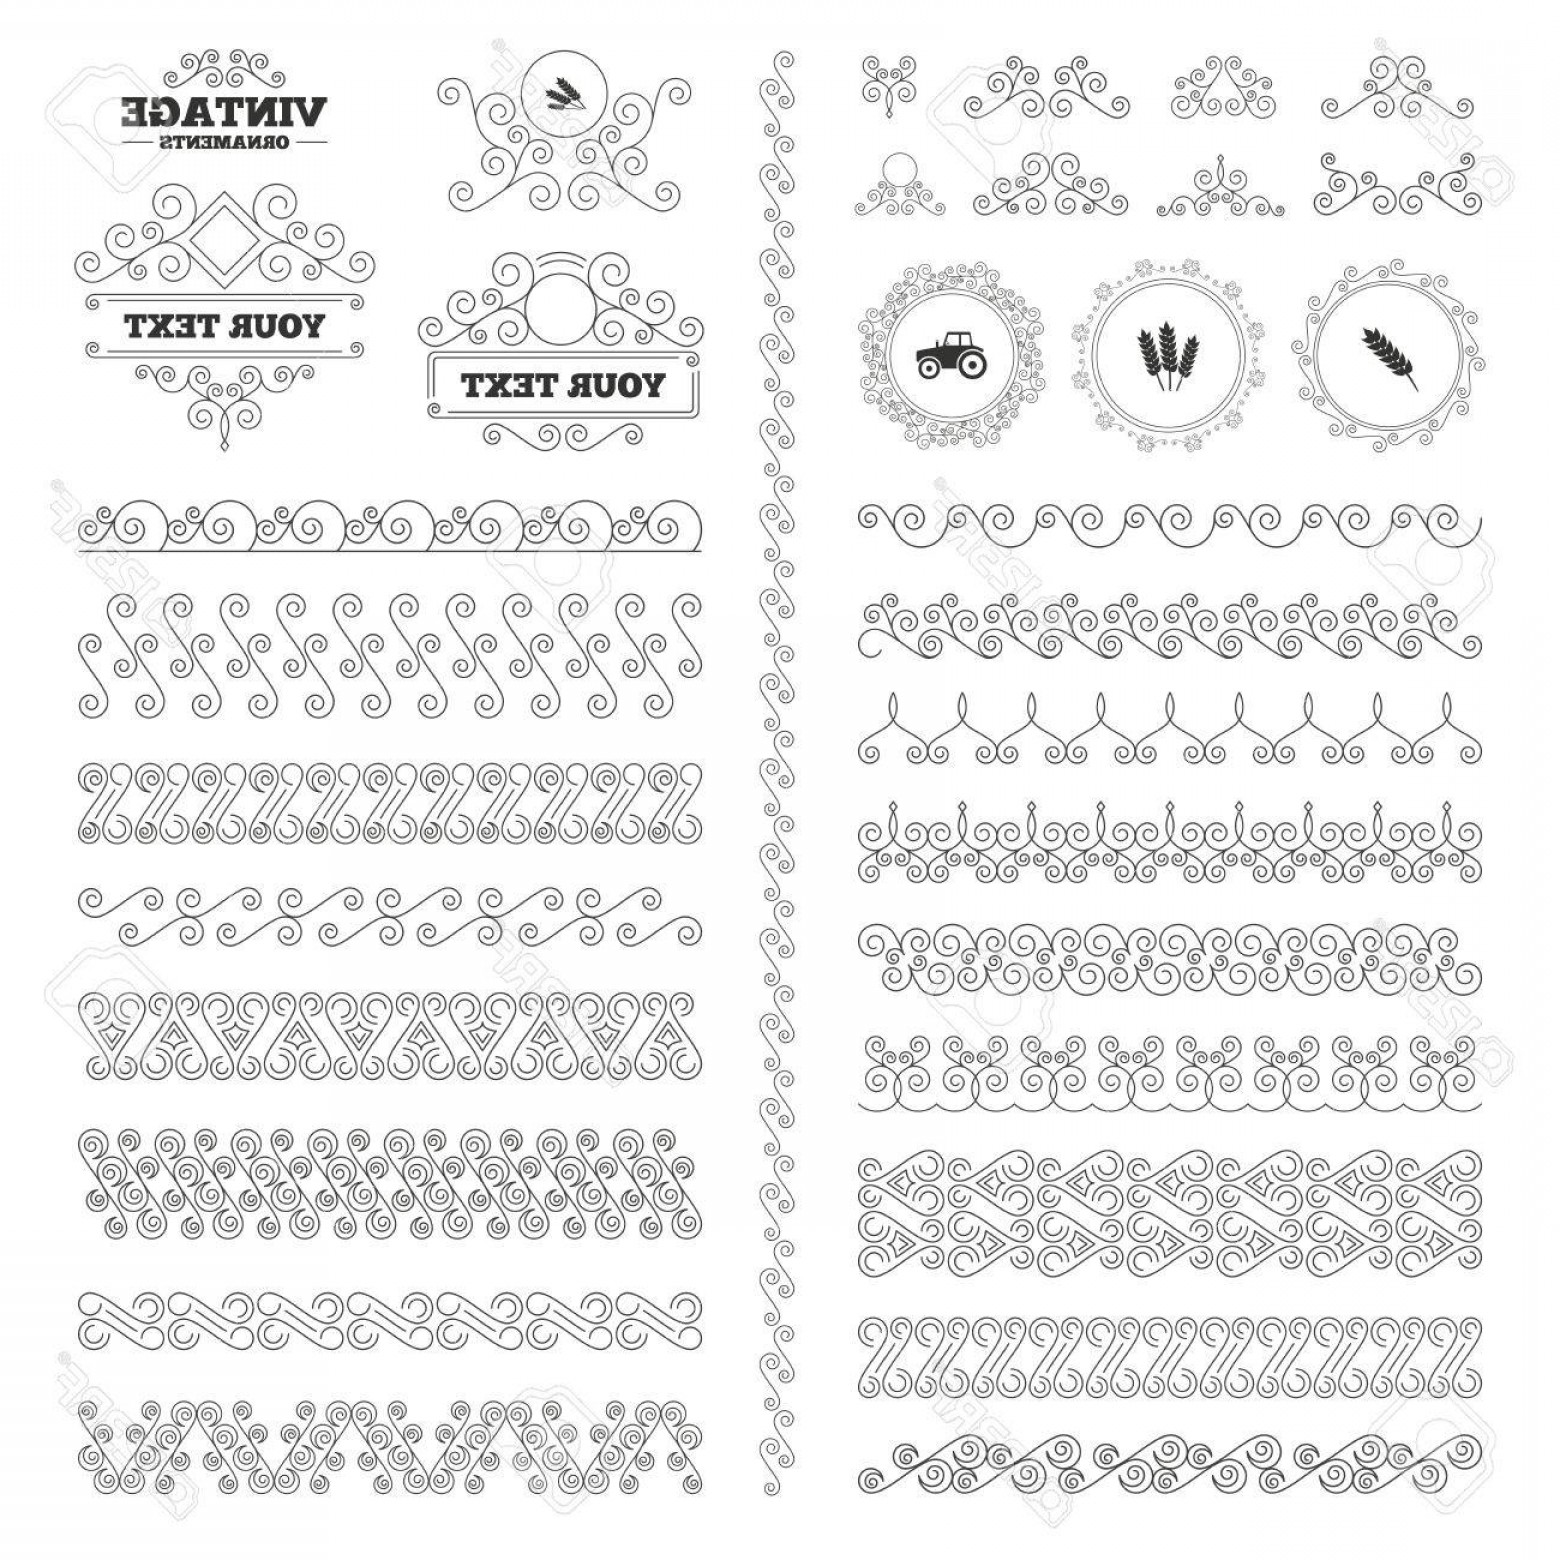 Wheat Flourishes Vector: Photostock Vector Vintage Ornaments Flourishes Calligraphic Agricultural Icons Wheat Corn Or Gluten Free Signs Symbols